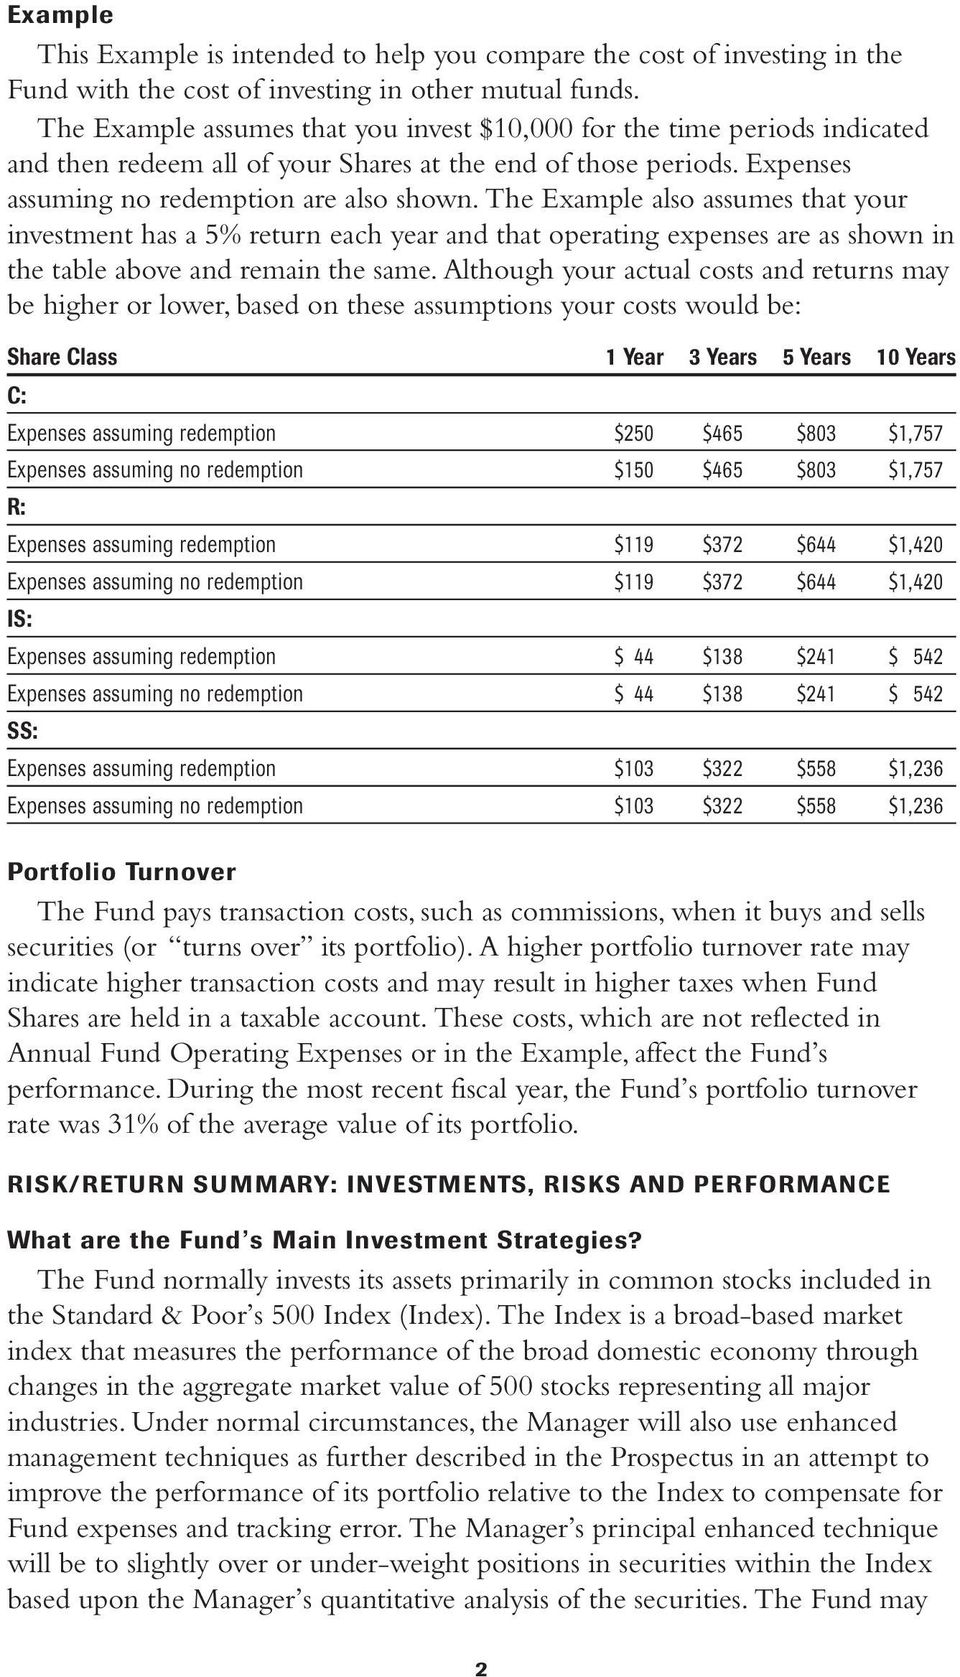 The Example also assumes that your investment has a 5% return each year and that operating expenses are as shown in the table above and remain the same.